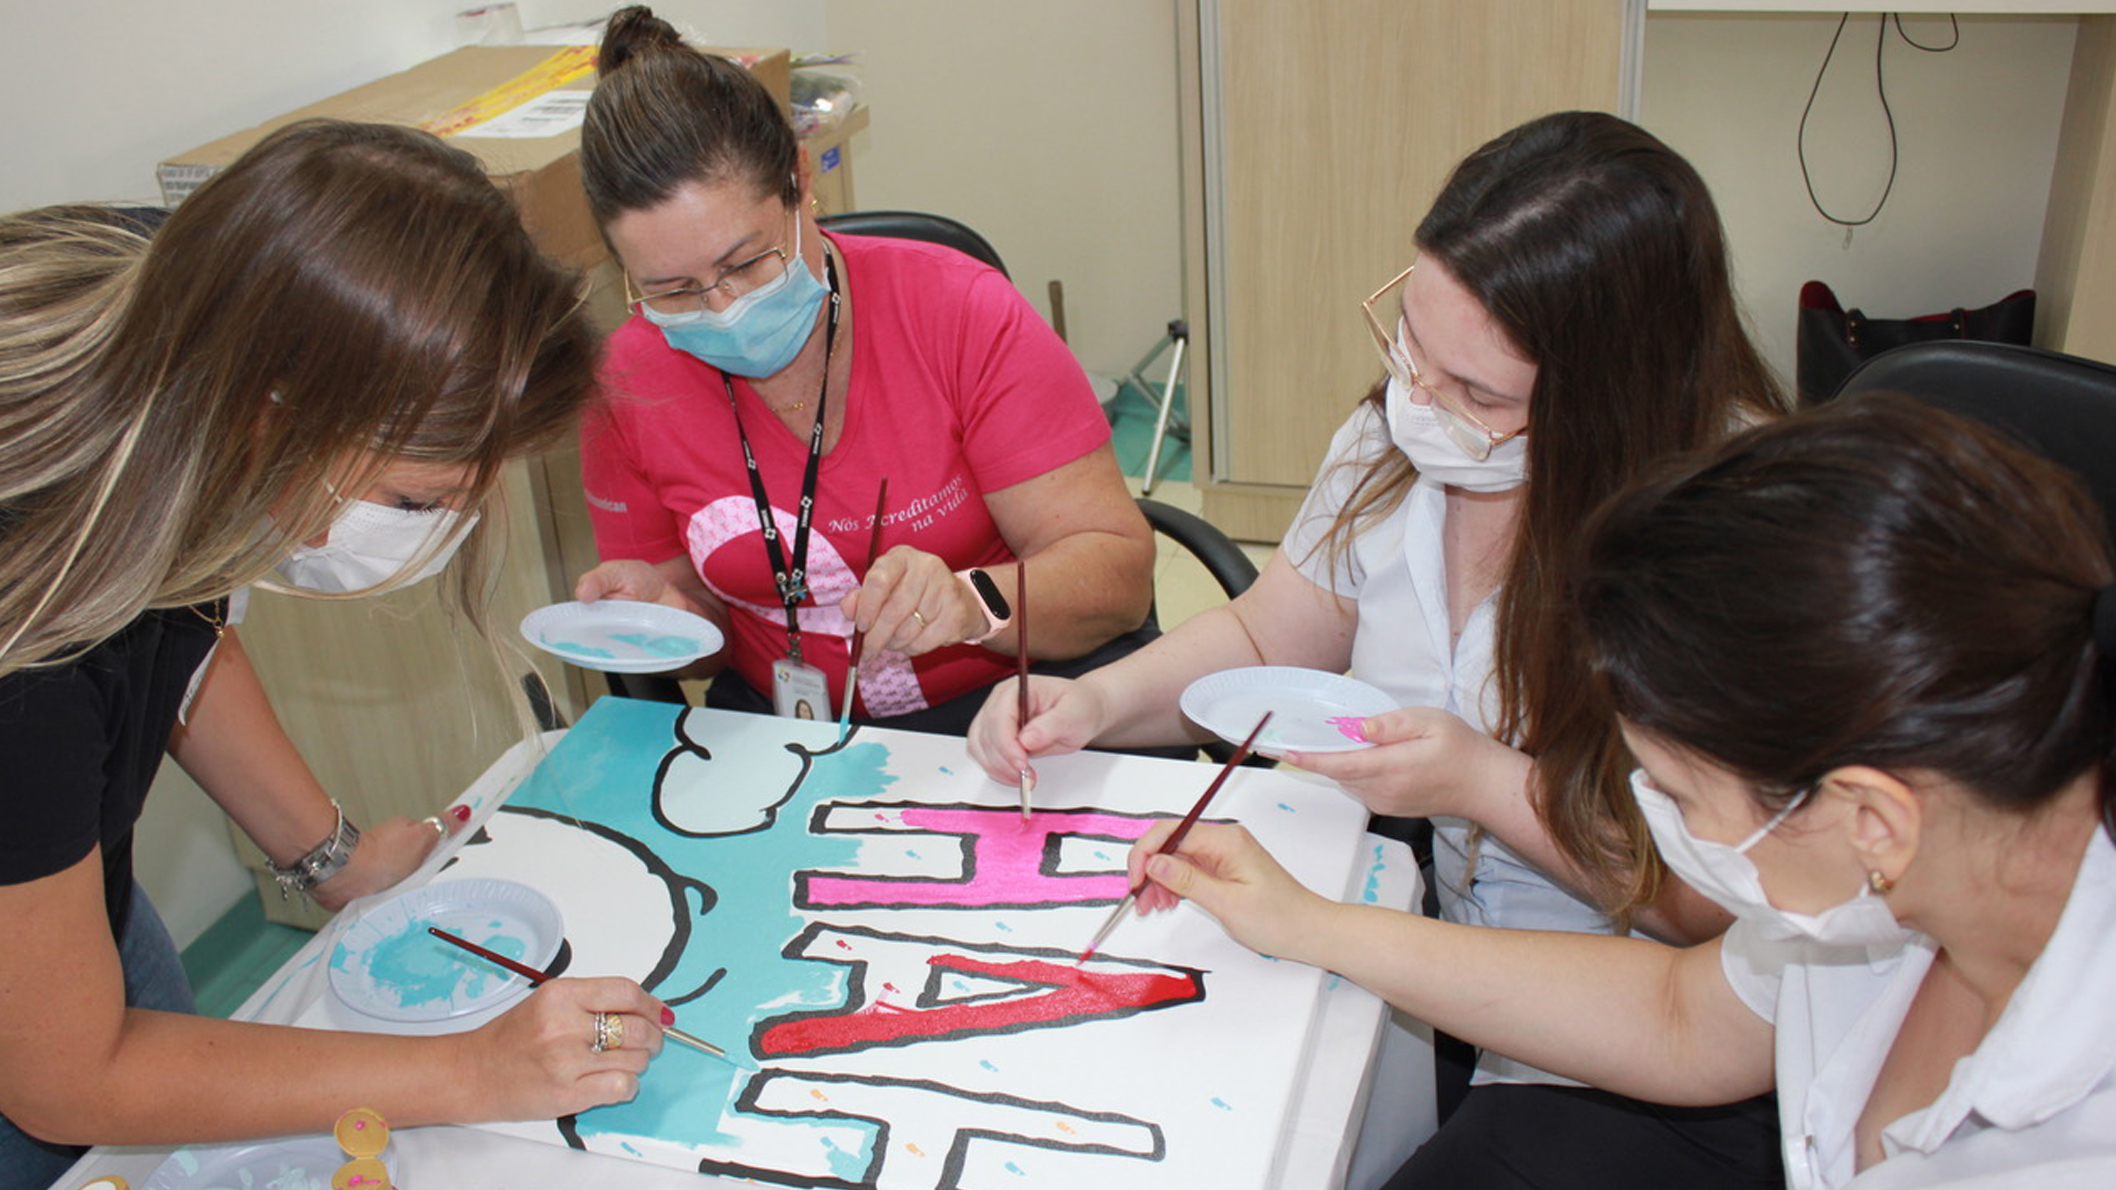 Adult women painting a mural at a hospital in Brazil